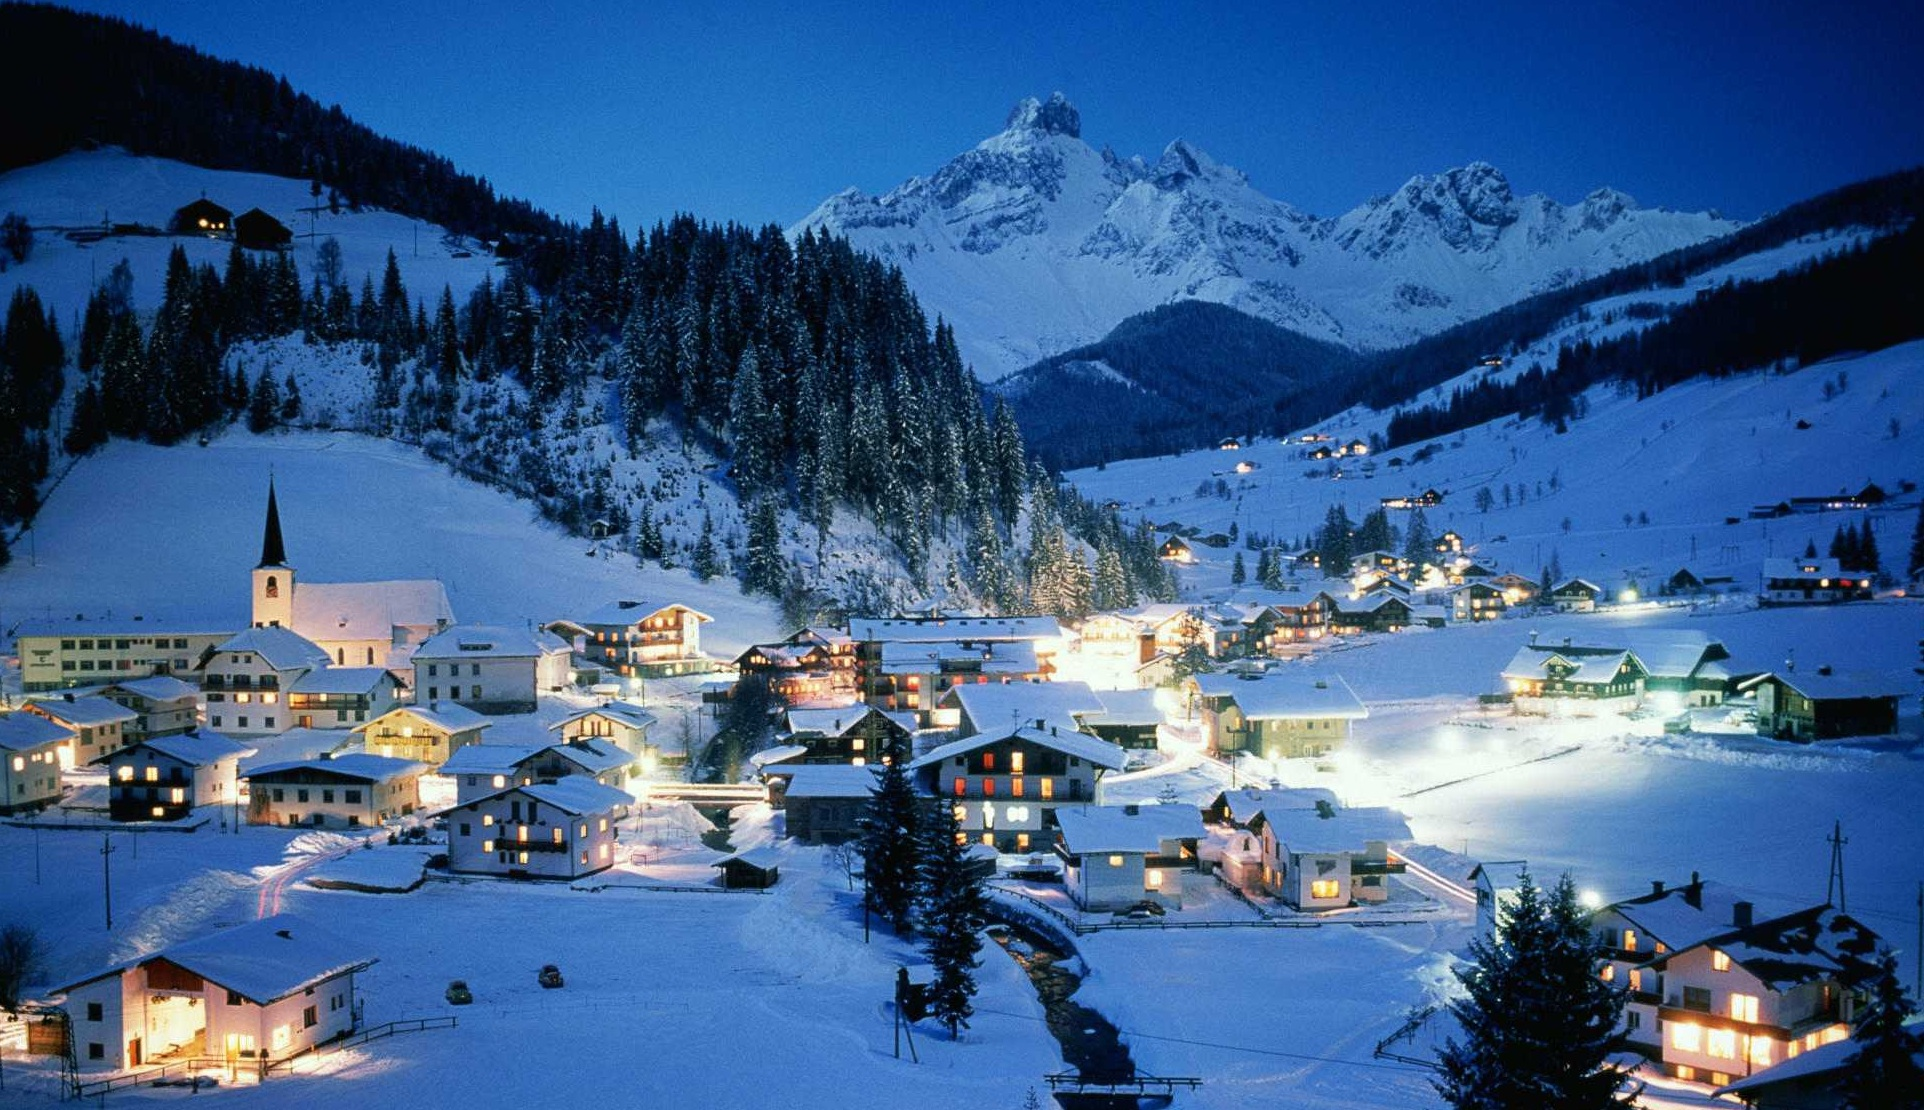 ski resort of Ischgl Austria wallpapers and images   wallpapers 1924x1110